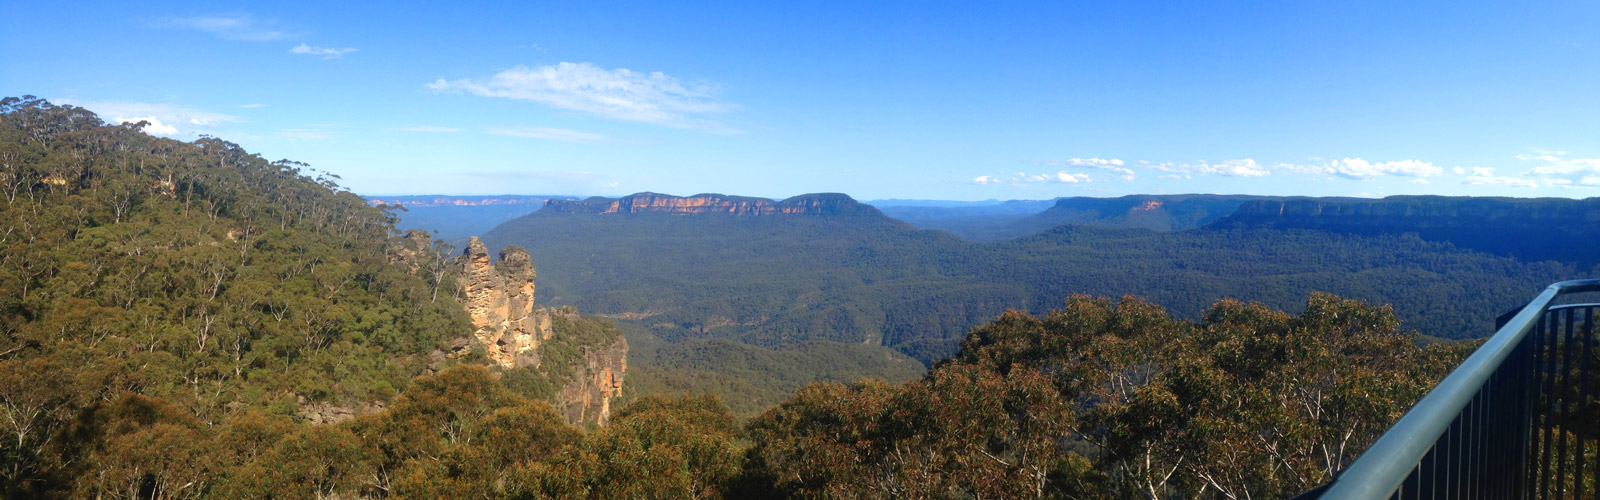 Megalong Valley, New South Wales